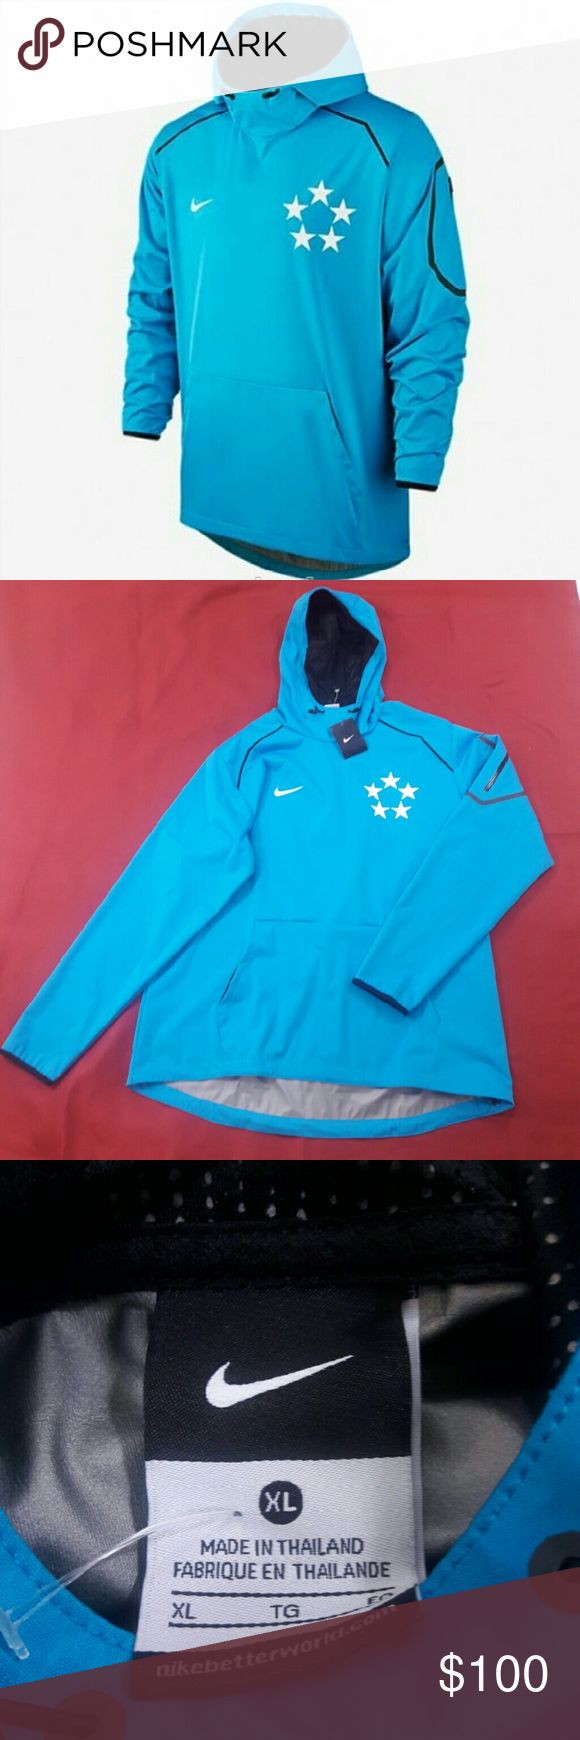 """Trend Mark Field General Fly Rush Hooded Pullover Excellent Condition! No flaws! Sz XL  Measurements: Shoulder to Shoulder 19.5"""", Armpit to Armpit 25.5"""", Length 30.5"""". Sleeve Length 28.5?.  Please, review pics. Contact me if you have questions. Smoke/Pet free home. Nike Shirts Sweatshirts & Hoodies"""